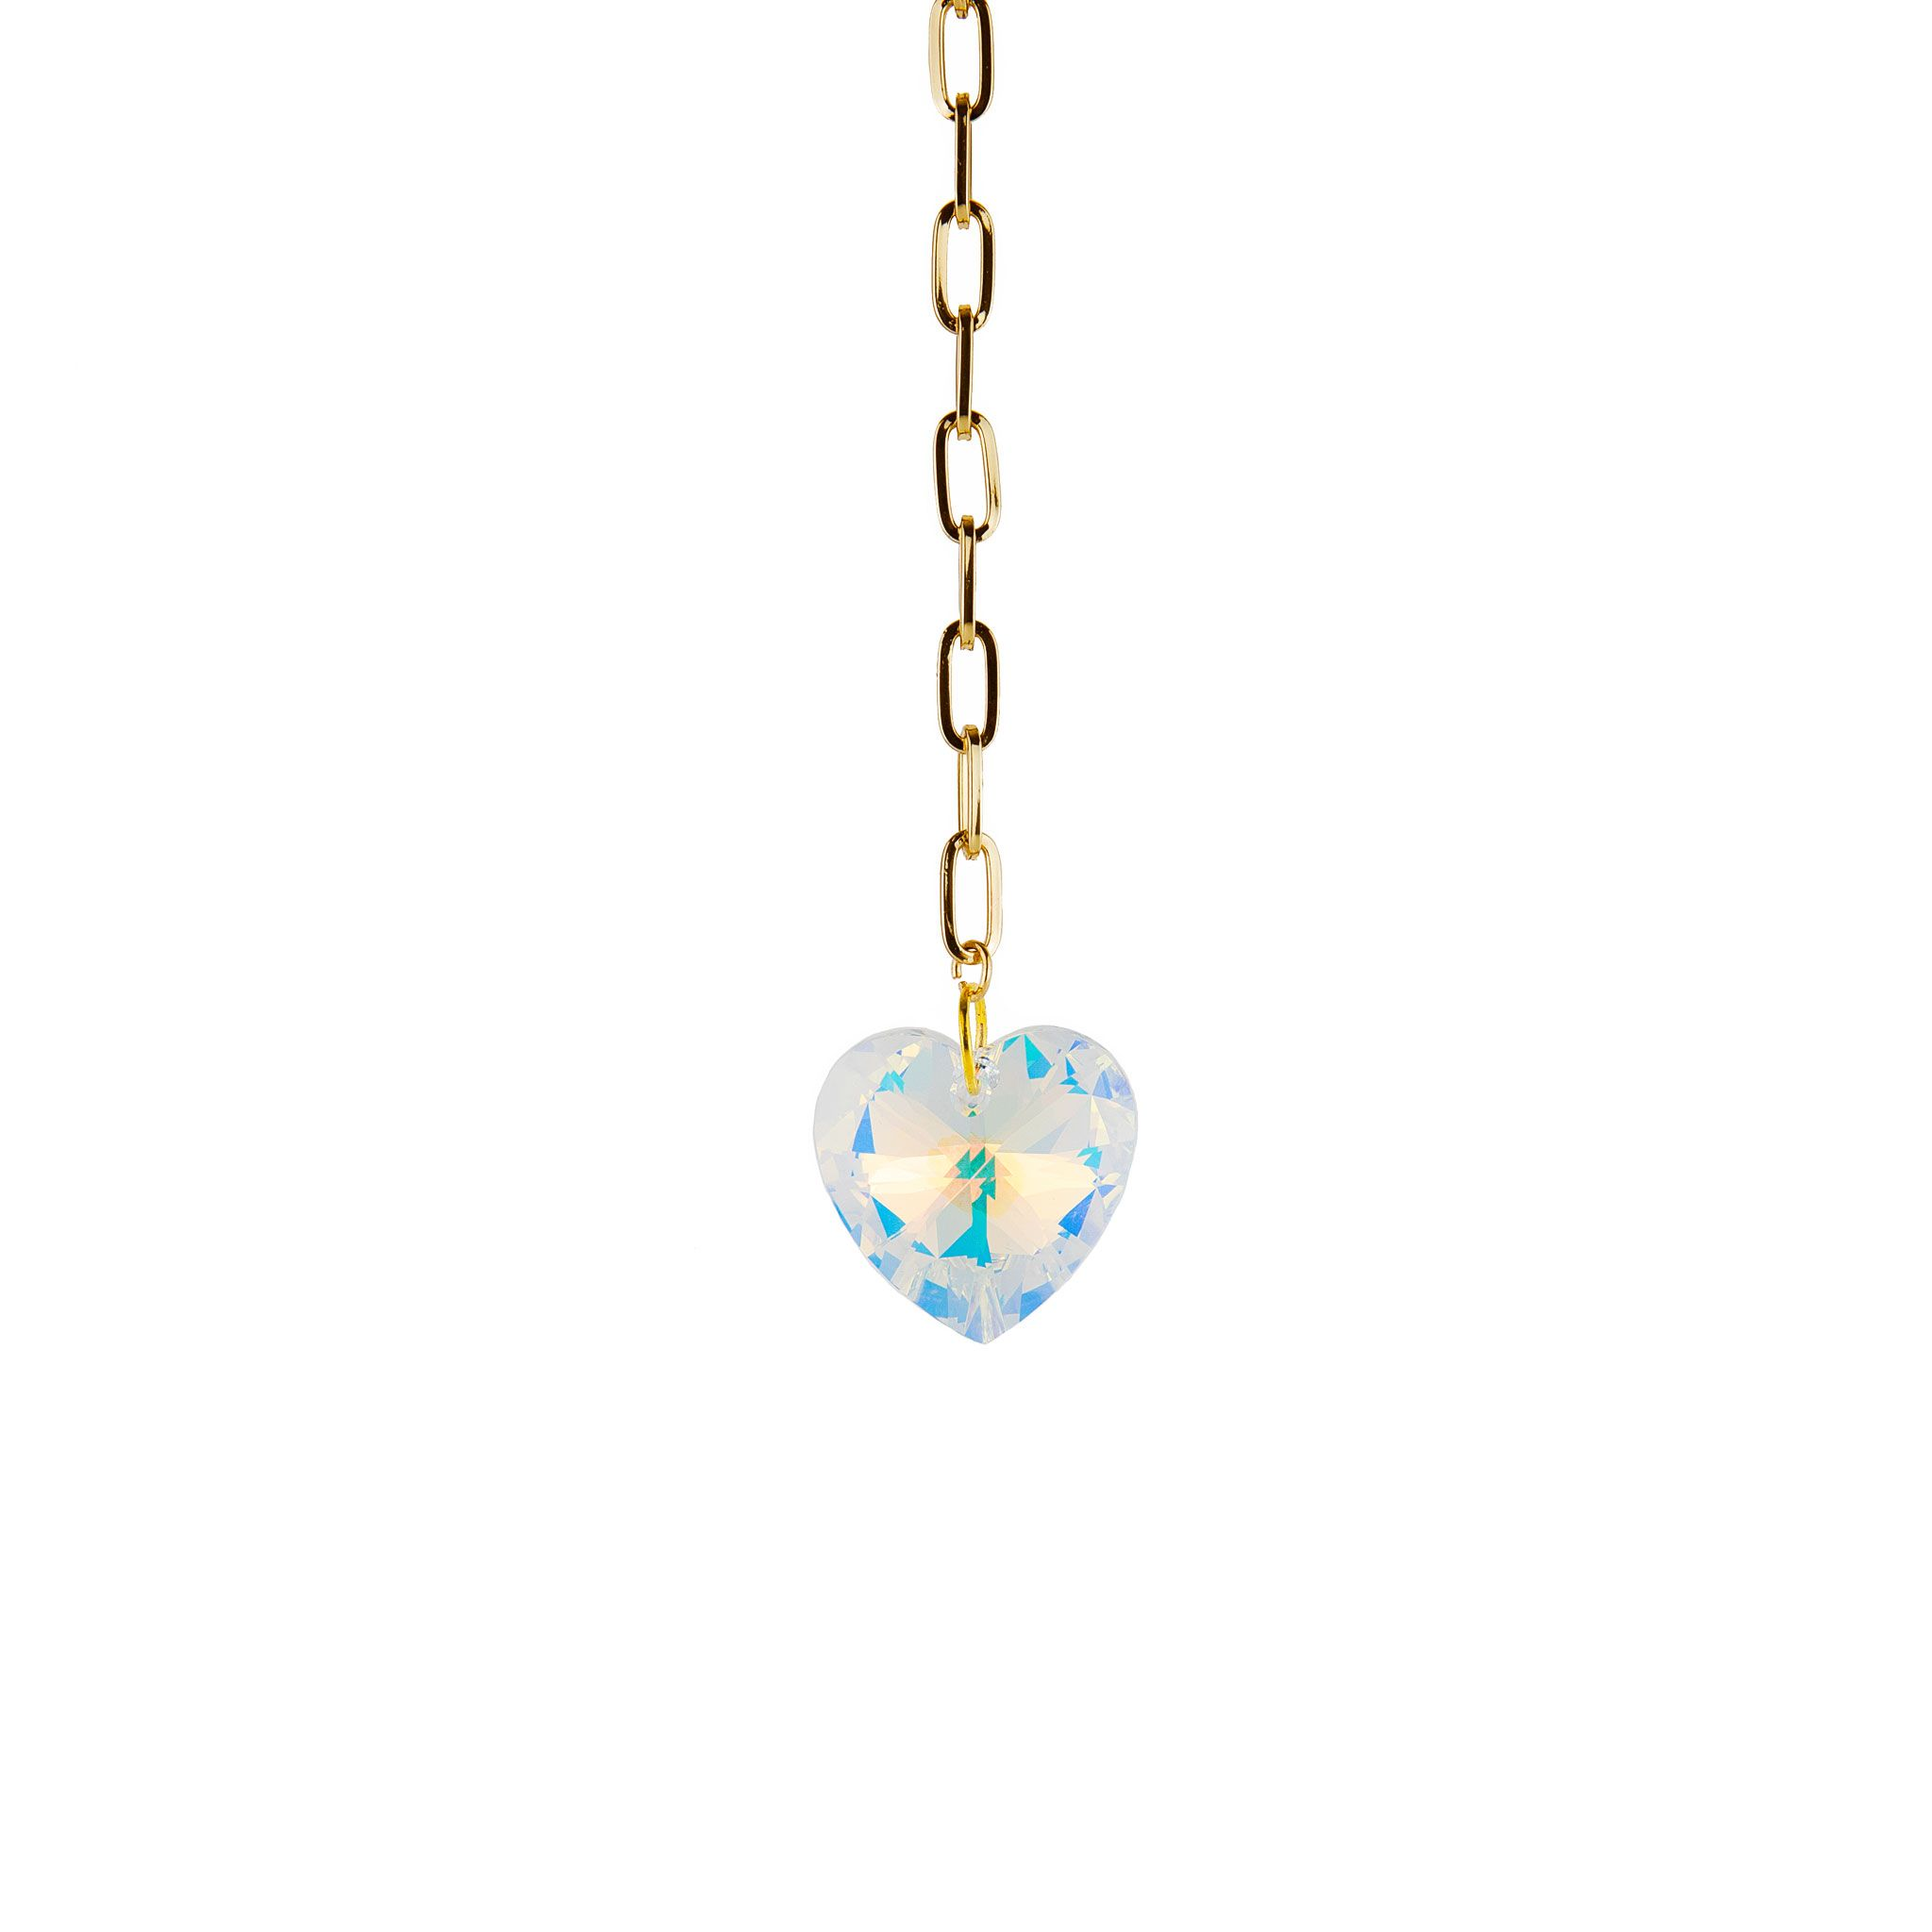 Crystal Heart Pendant Necklace